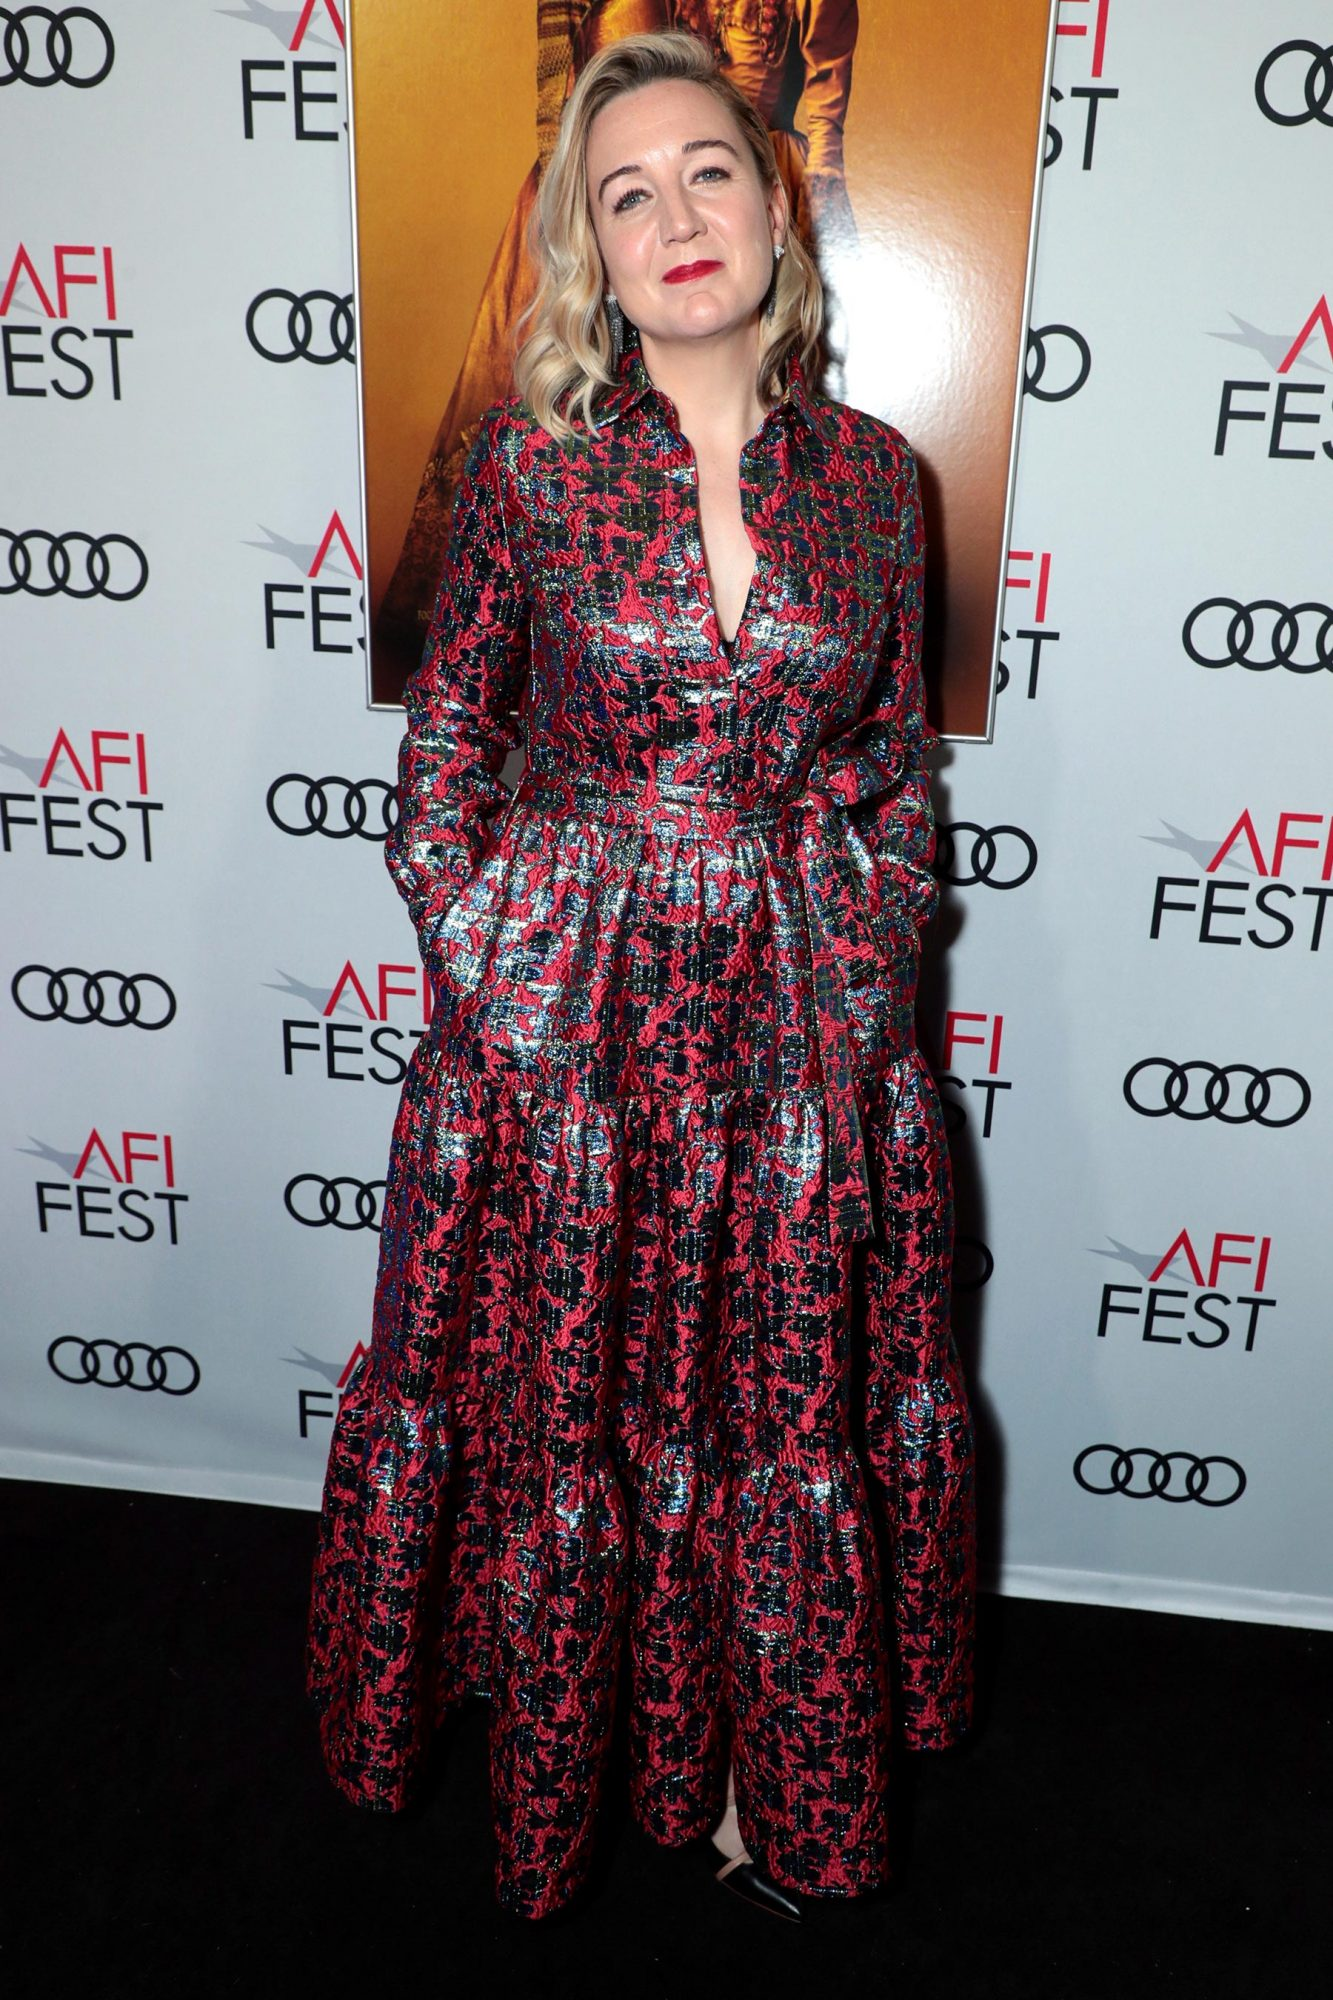 Focus Features 'Mary Queen of Scots' closing night gala screening of AFI FEST 2018, Los Angeles, CA, USA - 15 November 2018